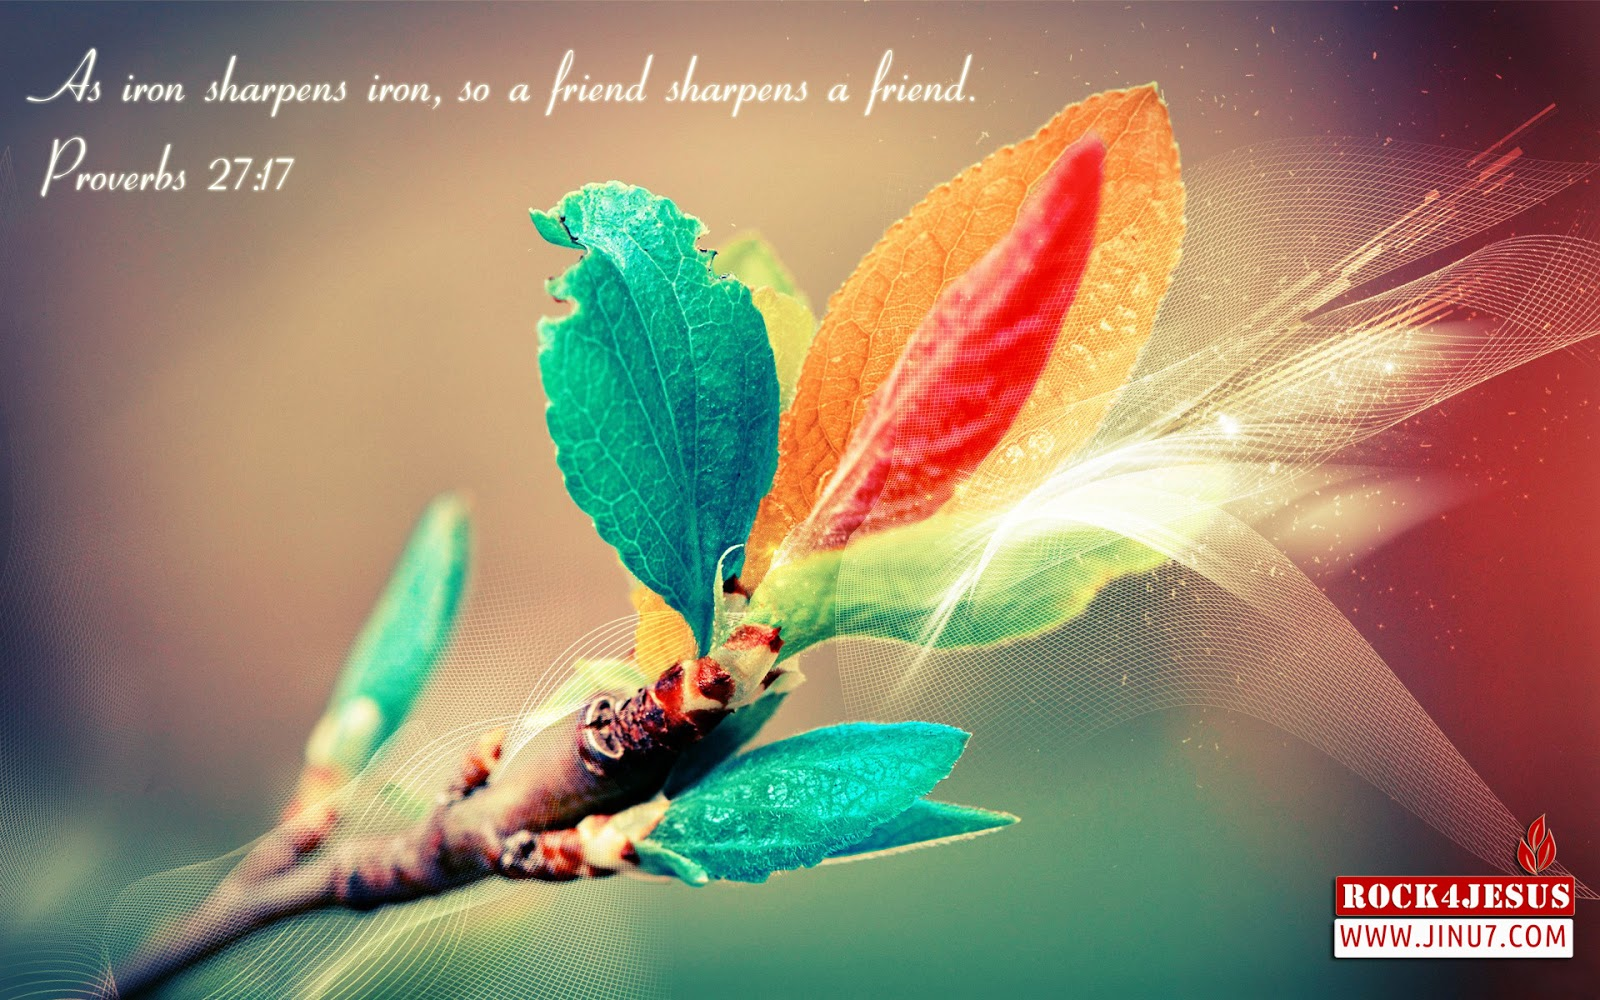 Frienship Day Christian Quotes Wallpaper